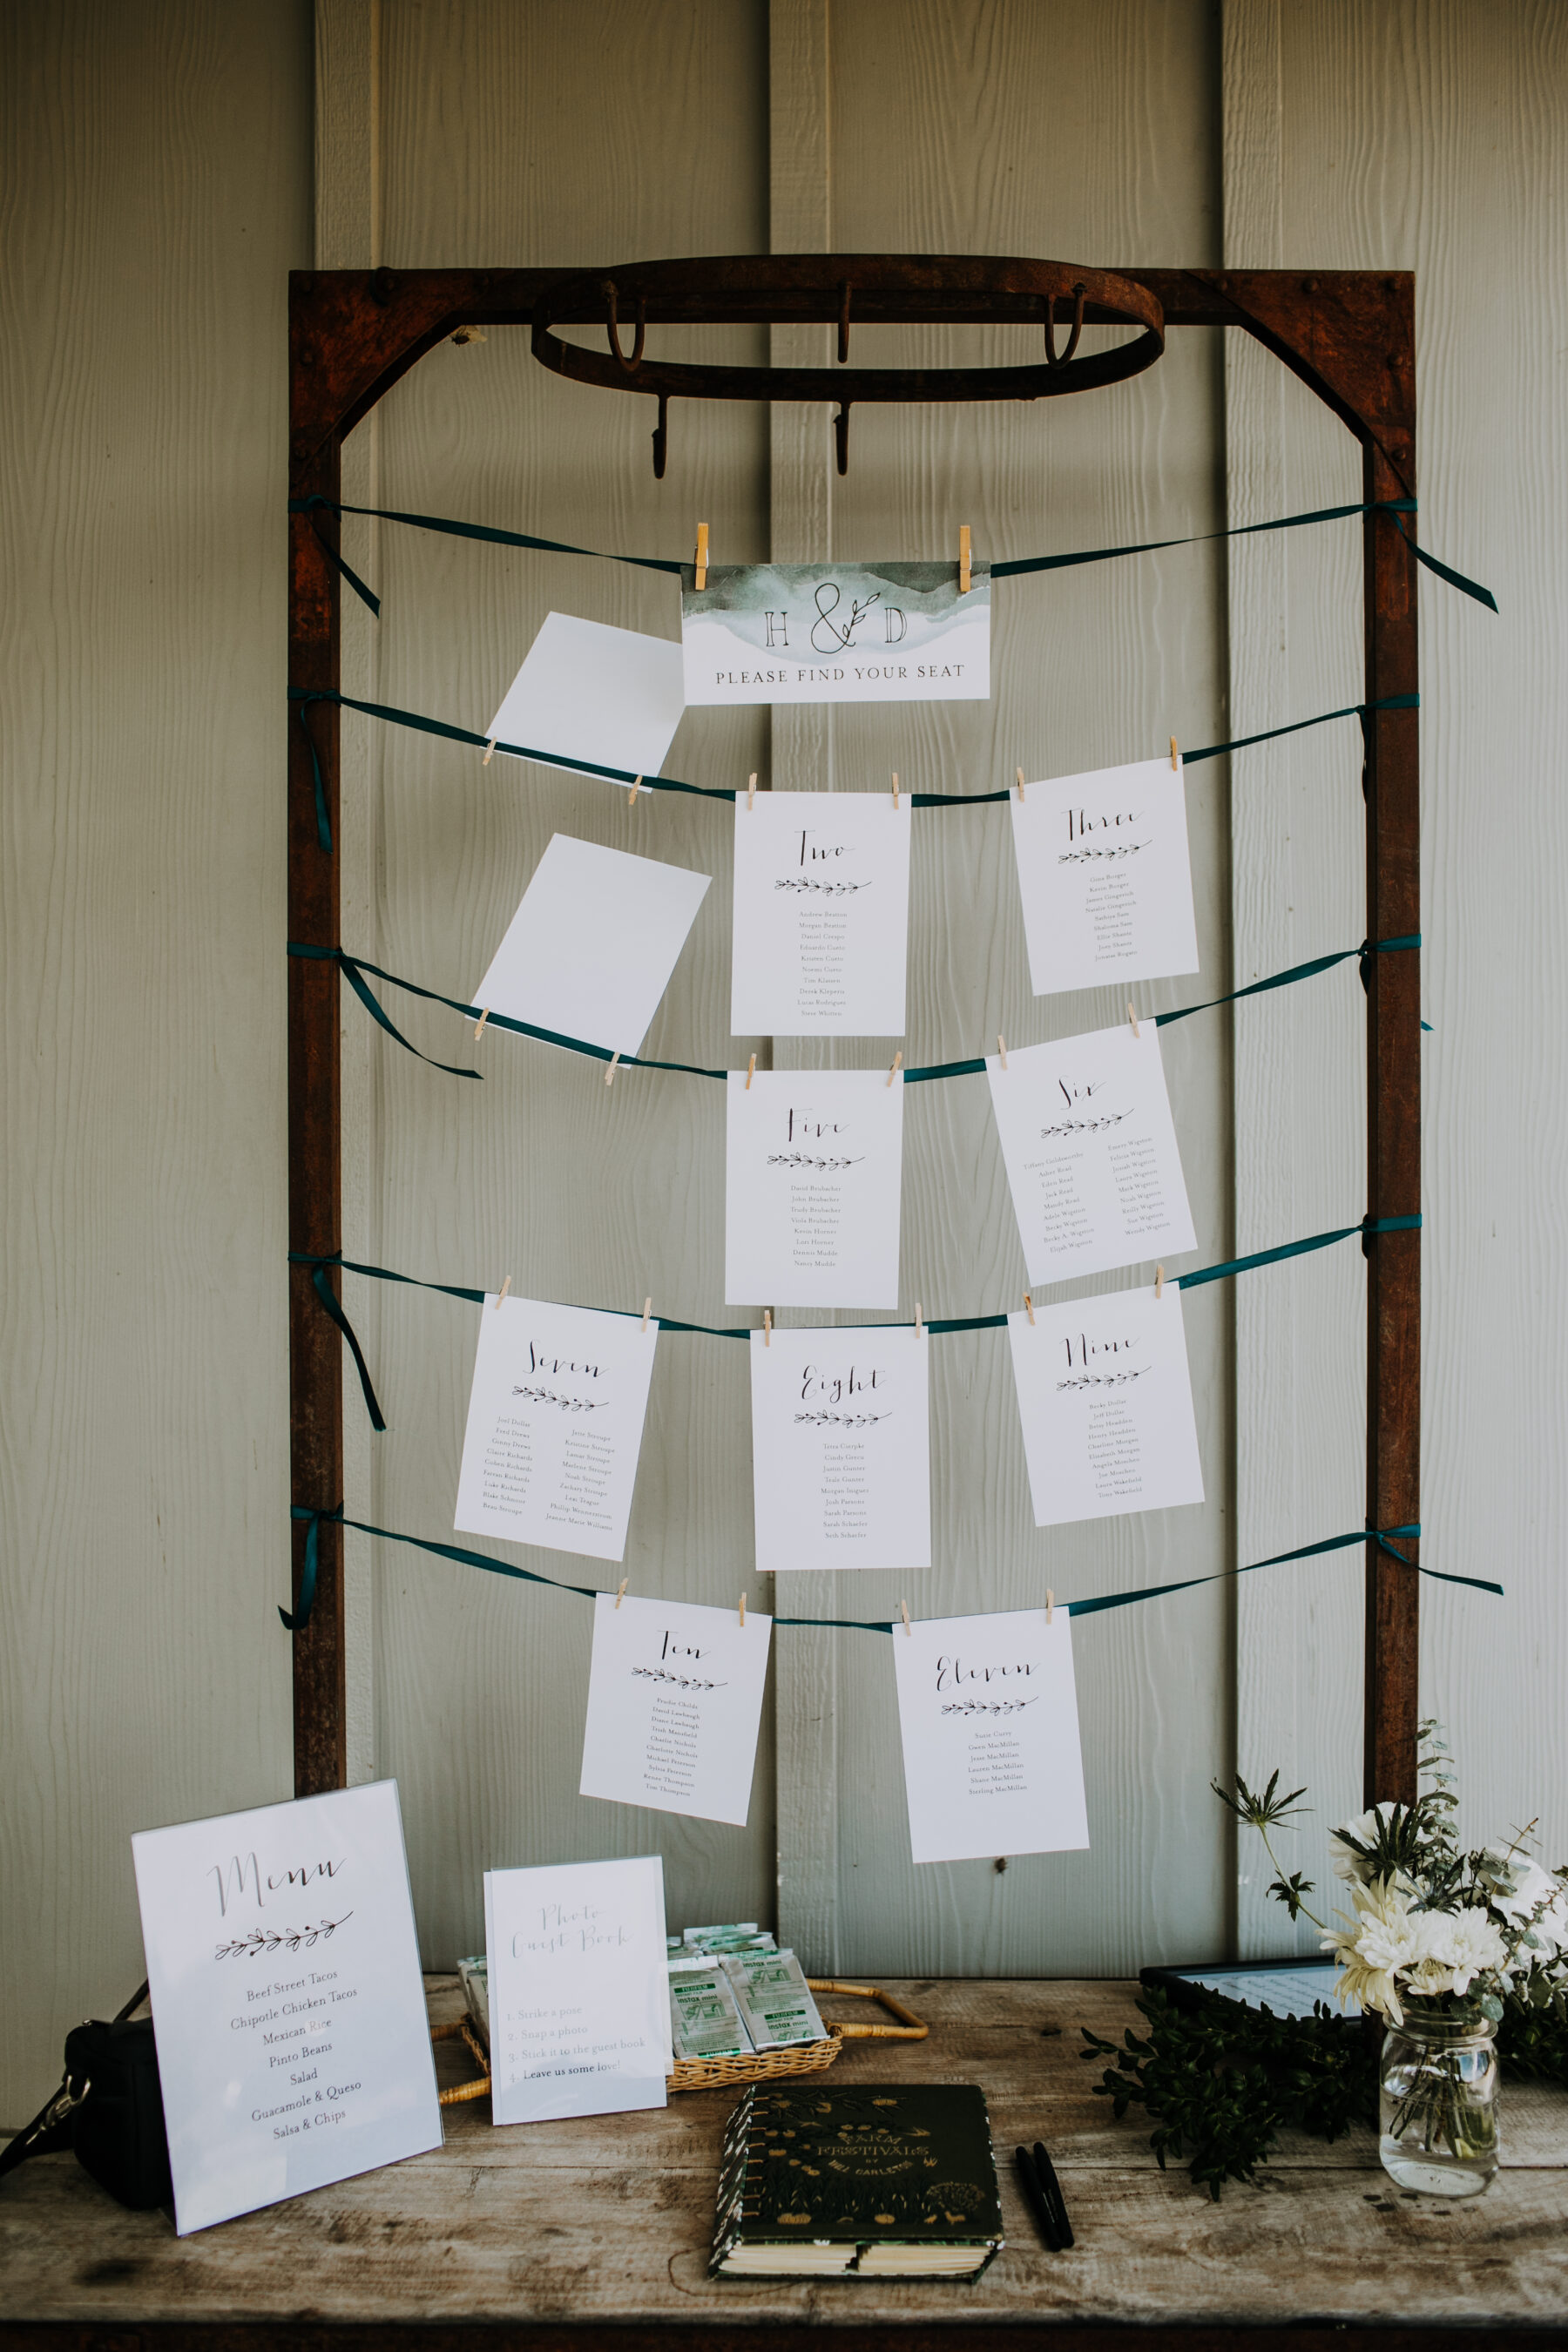 Wedding escort card ideas: Nashville Wedding with Beautiful Views by Teale Photography featured on Nashville Bride Guide